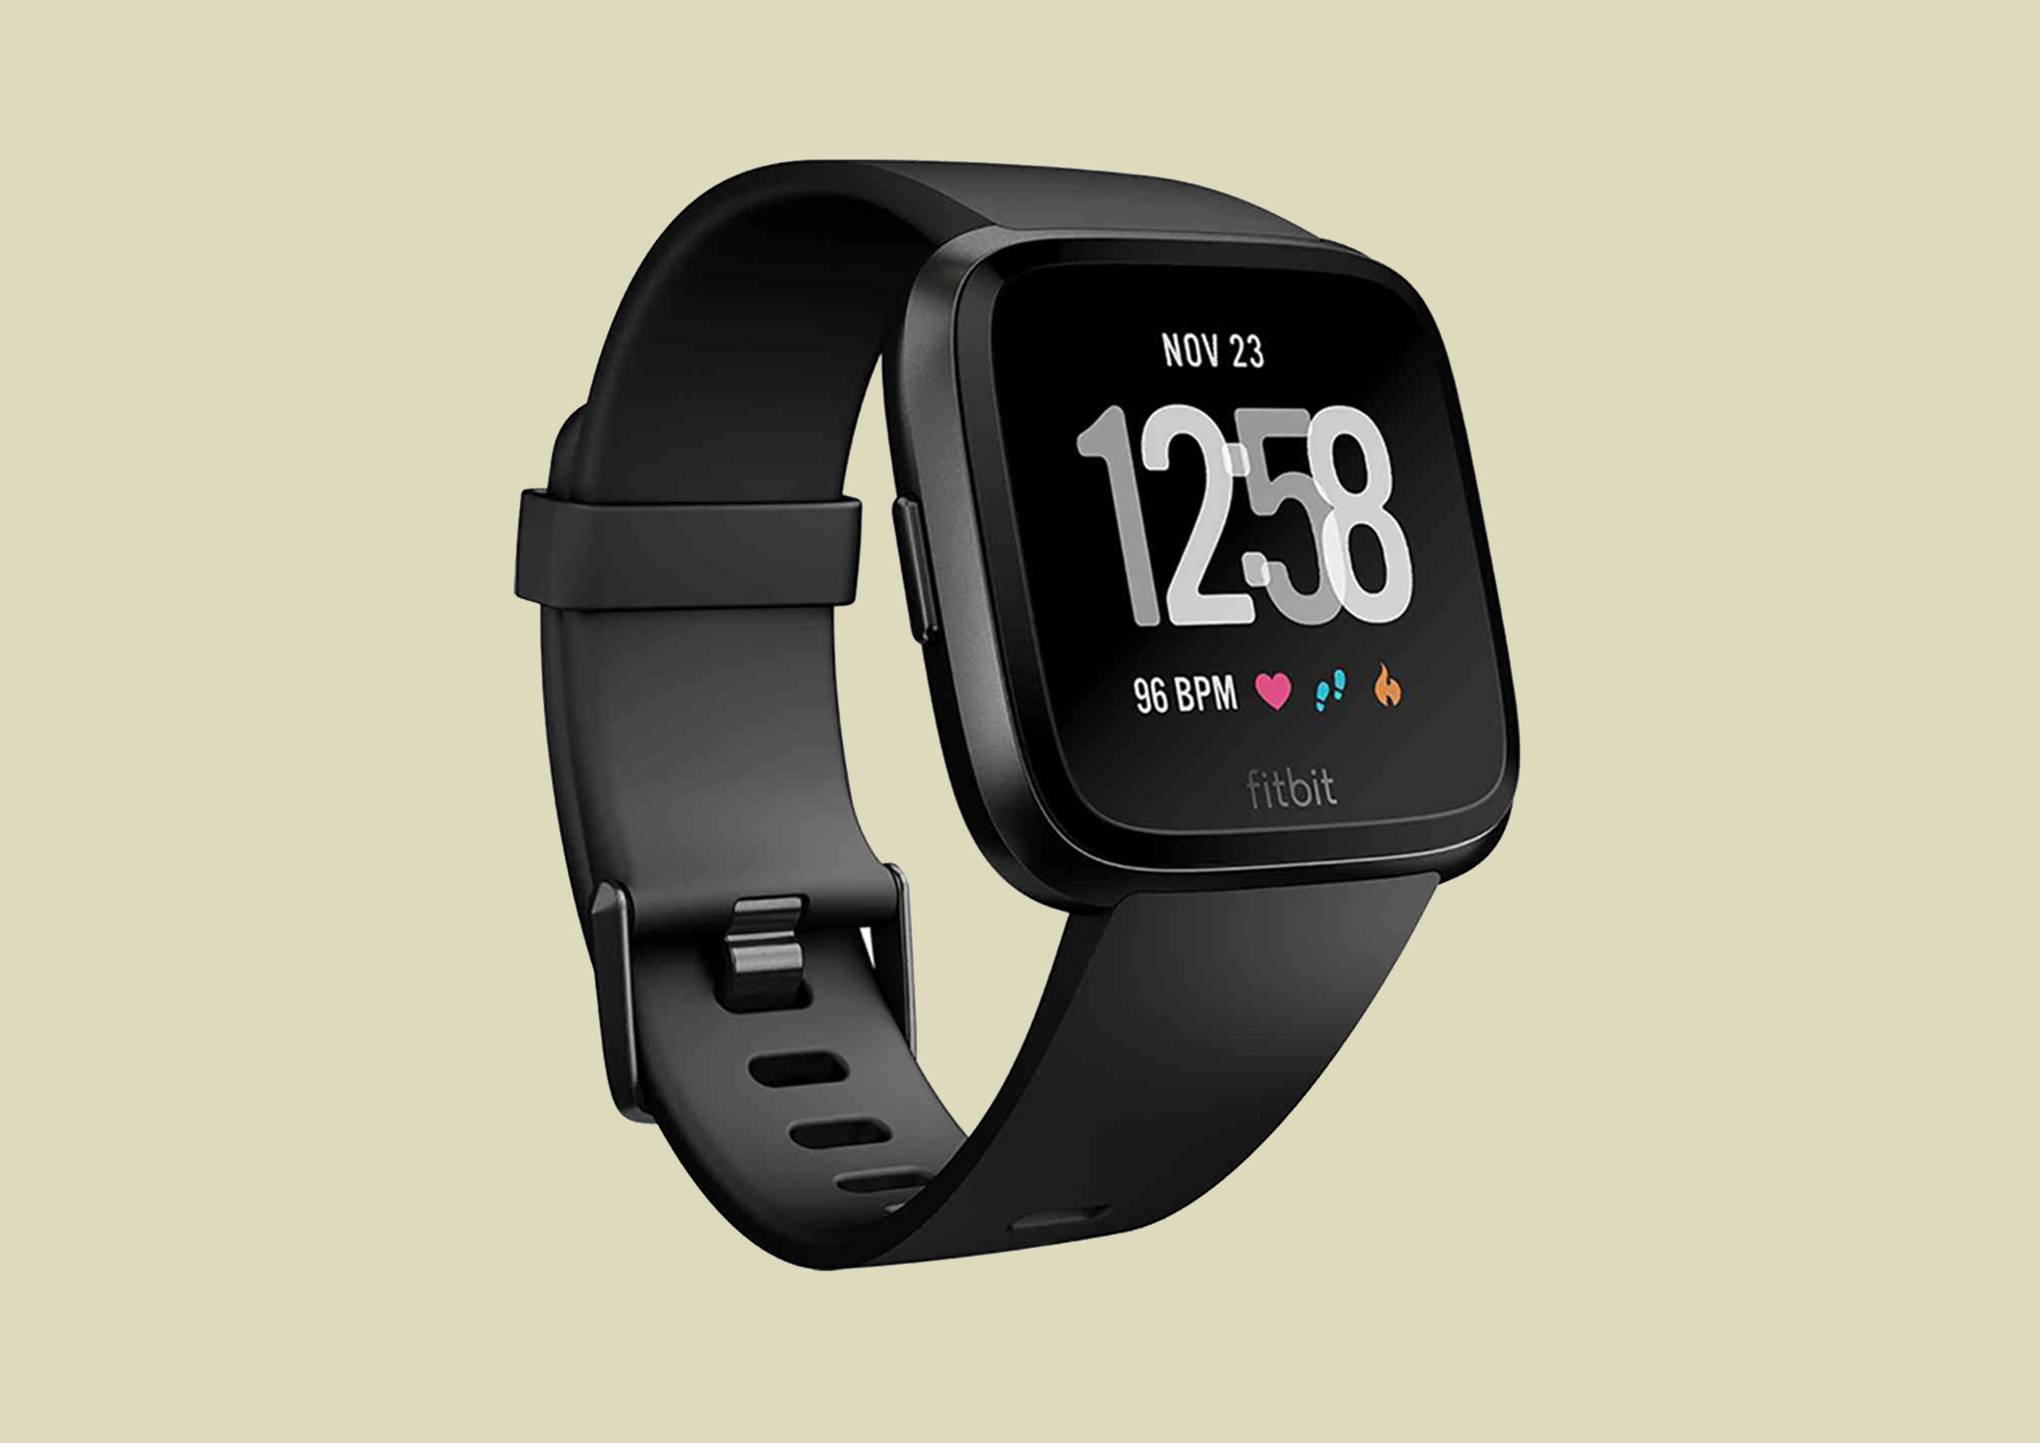 Best Smartwatch 2019: The best smartwatches for Android and